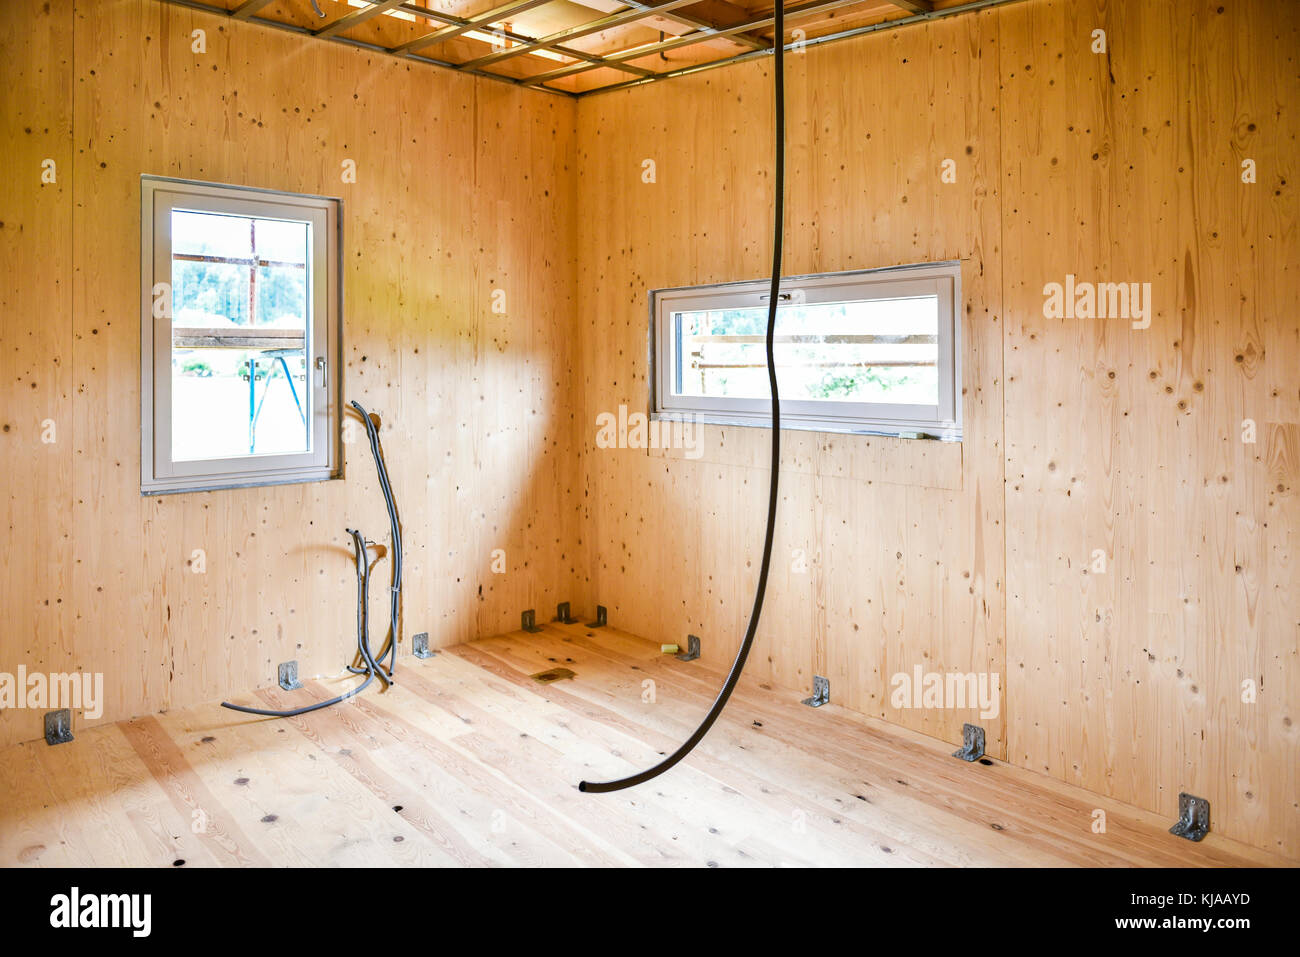 Electrical installation in a wooden house: design rules for step-by-step installation 31